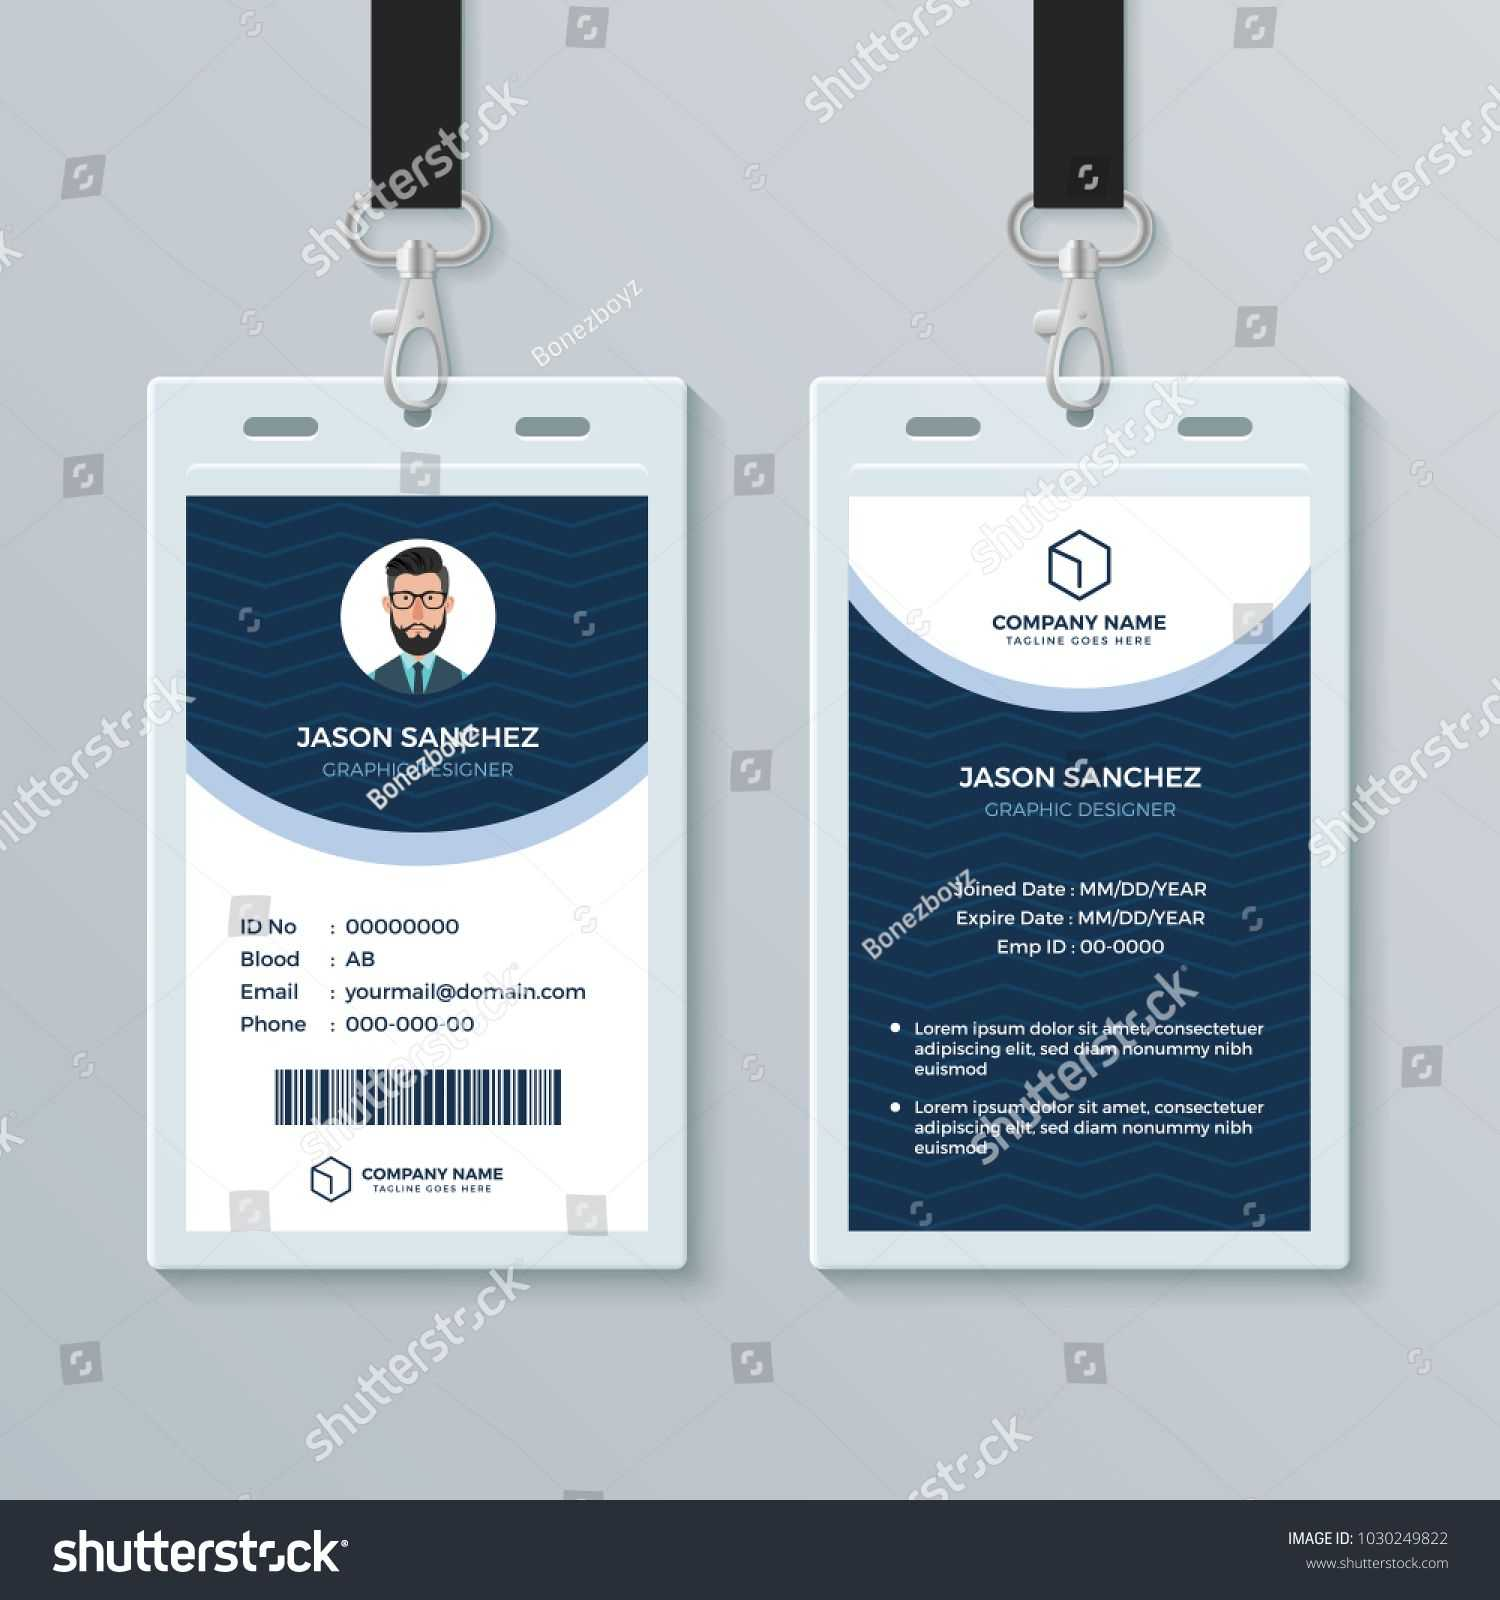 003 Free Id Card Template Fascinating Ideas Download Word Regarding Portrait Id Card Template